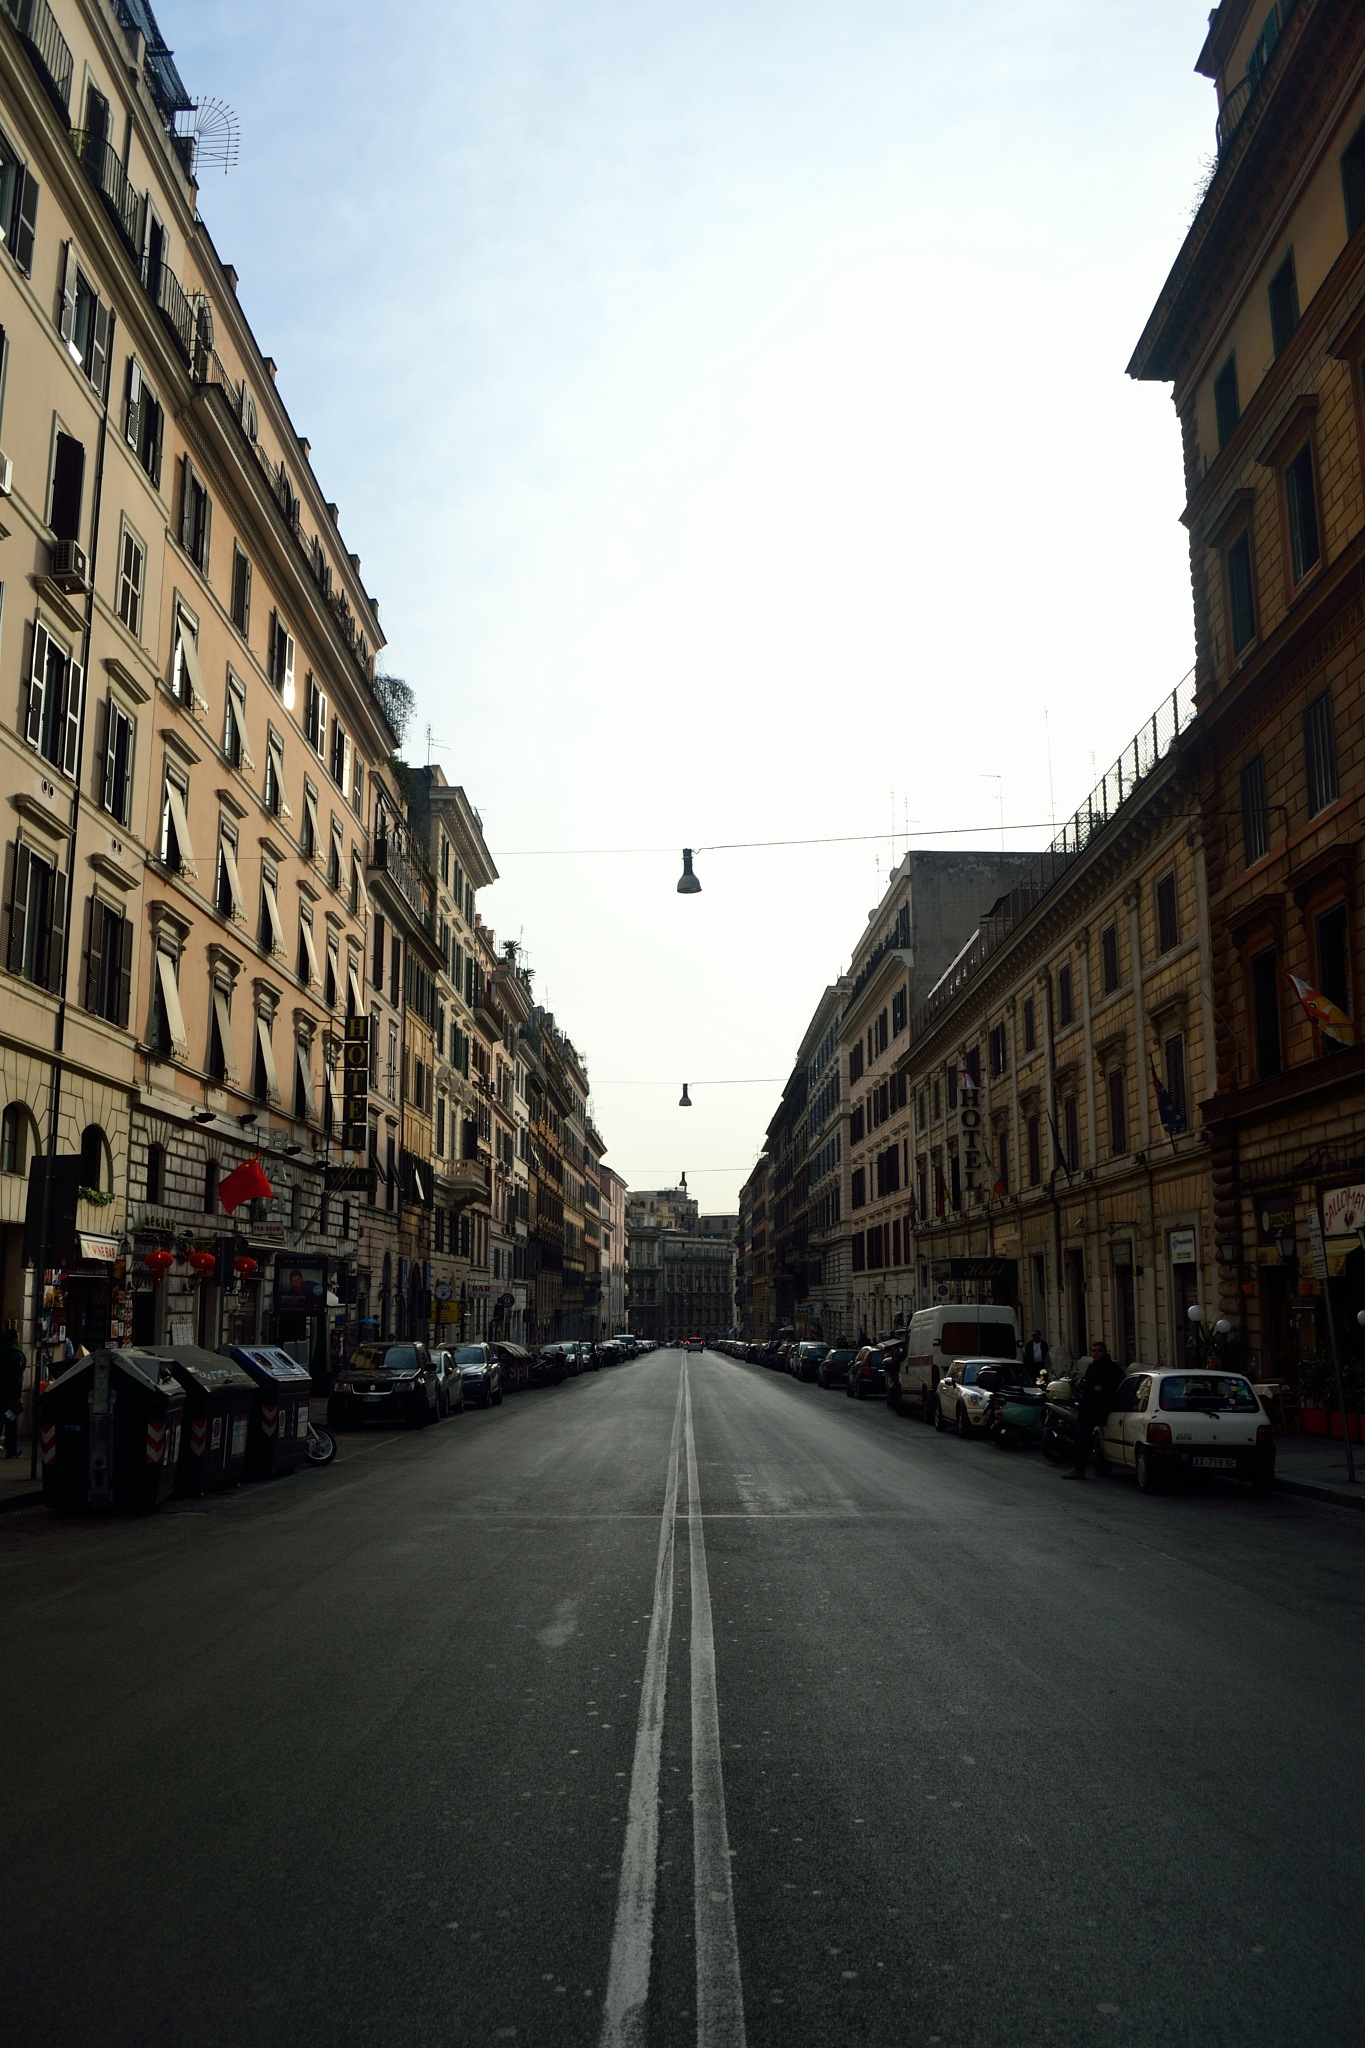 Empty Streets in Rome by Mario Hlavac